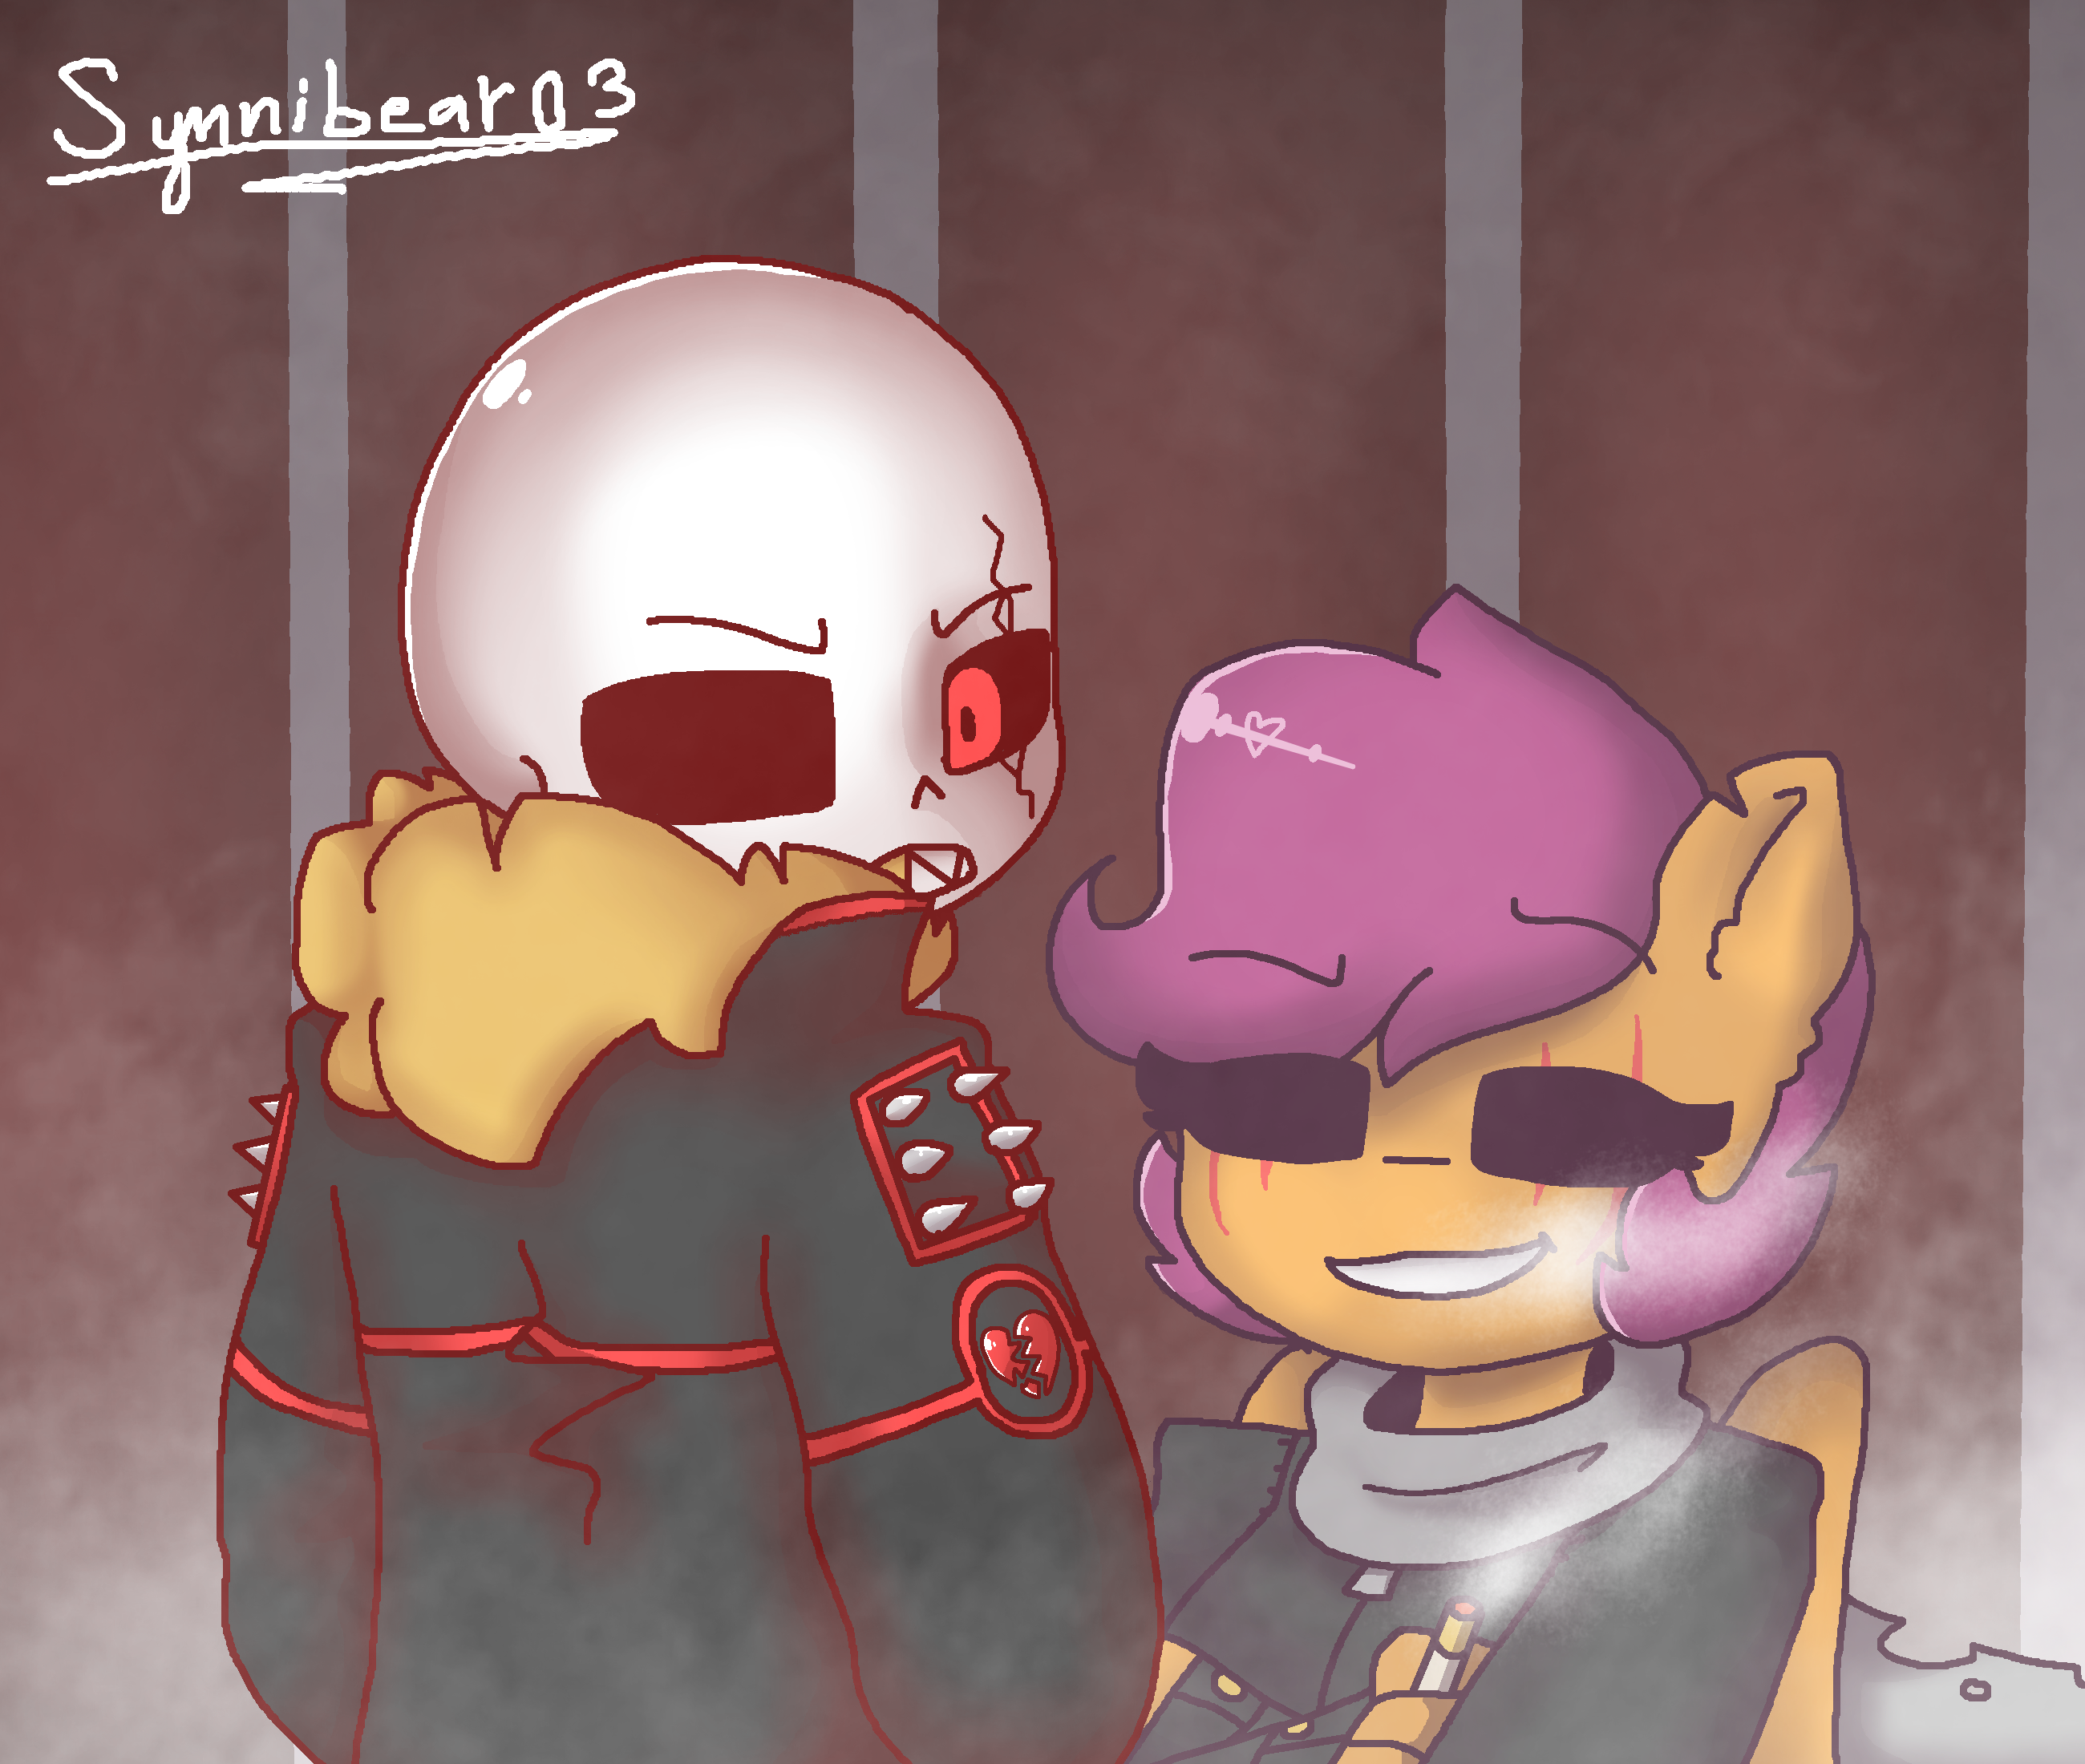 1619211 Anthro Artist Synnibear03 Comic Ponytale Crossover Crossover Shipping Edgy Female Male Oc Oc Ponytale Scootaloo Safe Sans Undertale Scootaloo Scootaloo Loves Sans Scootasans Shipping Straight Underfell Underfell Scootaloo She is the mascot of her channel and also appears in her comic, ponytale. scootaloo loves sans